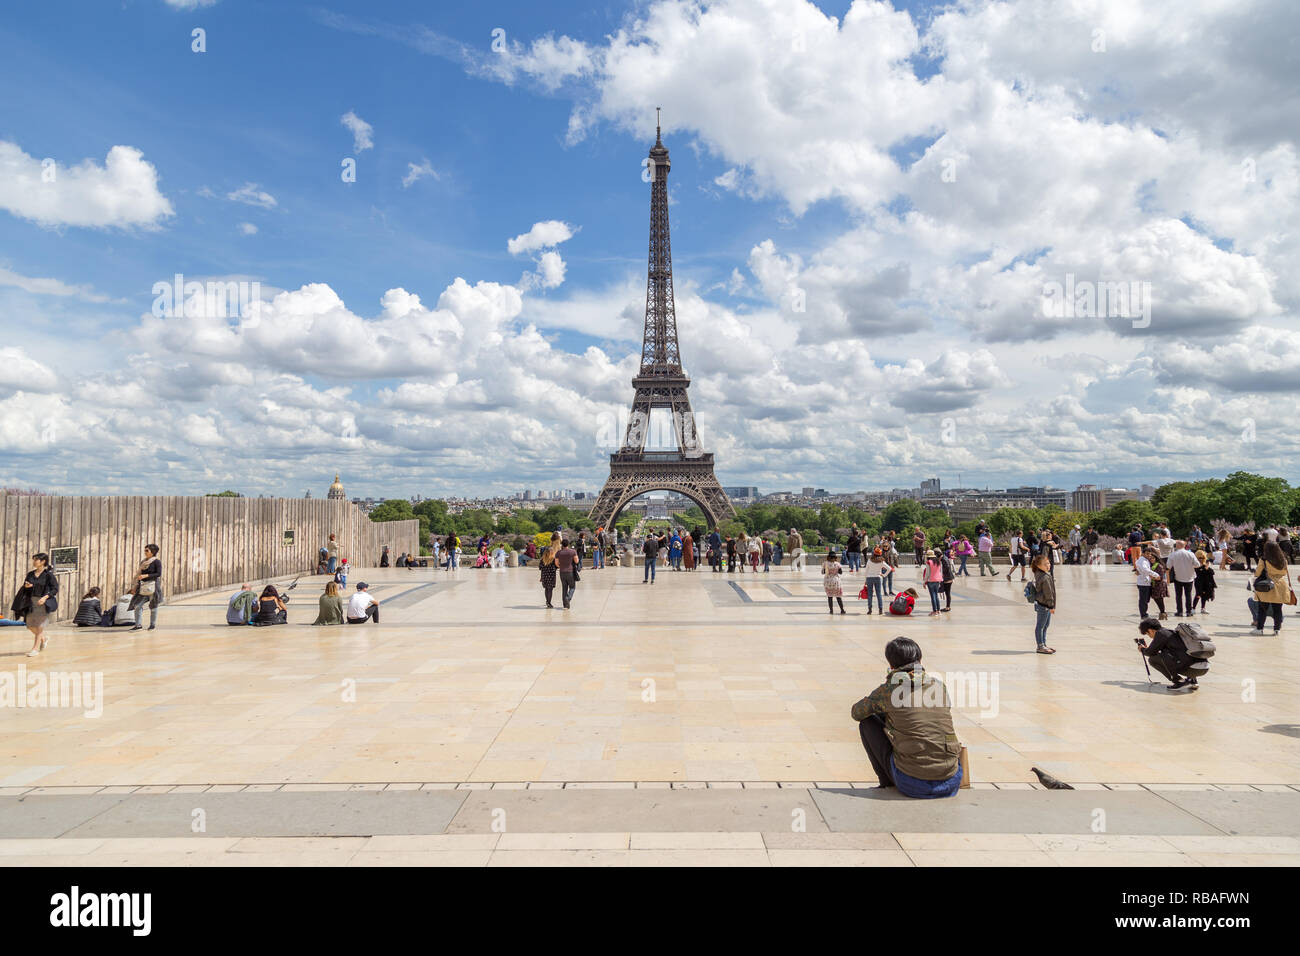 Eiffel Tower and Trocadero Sqaure in Paris - Stock Image